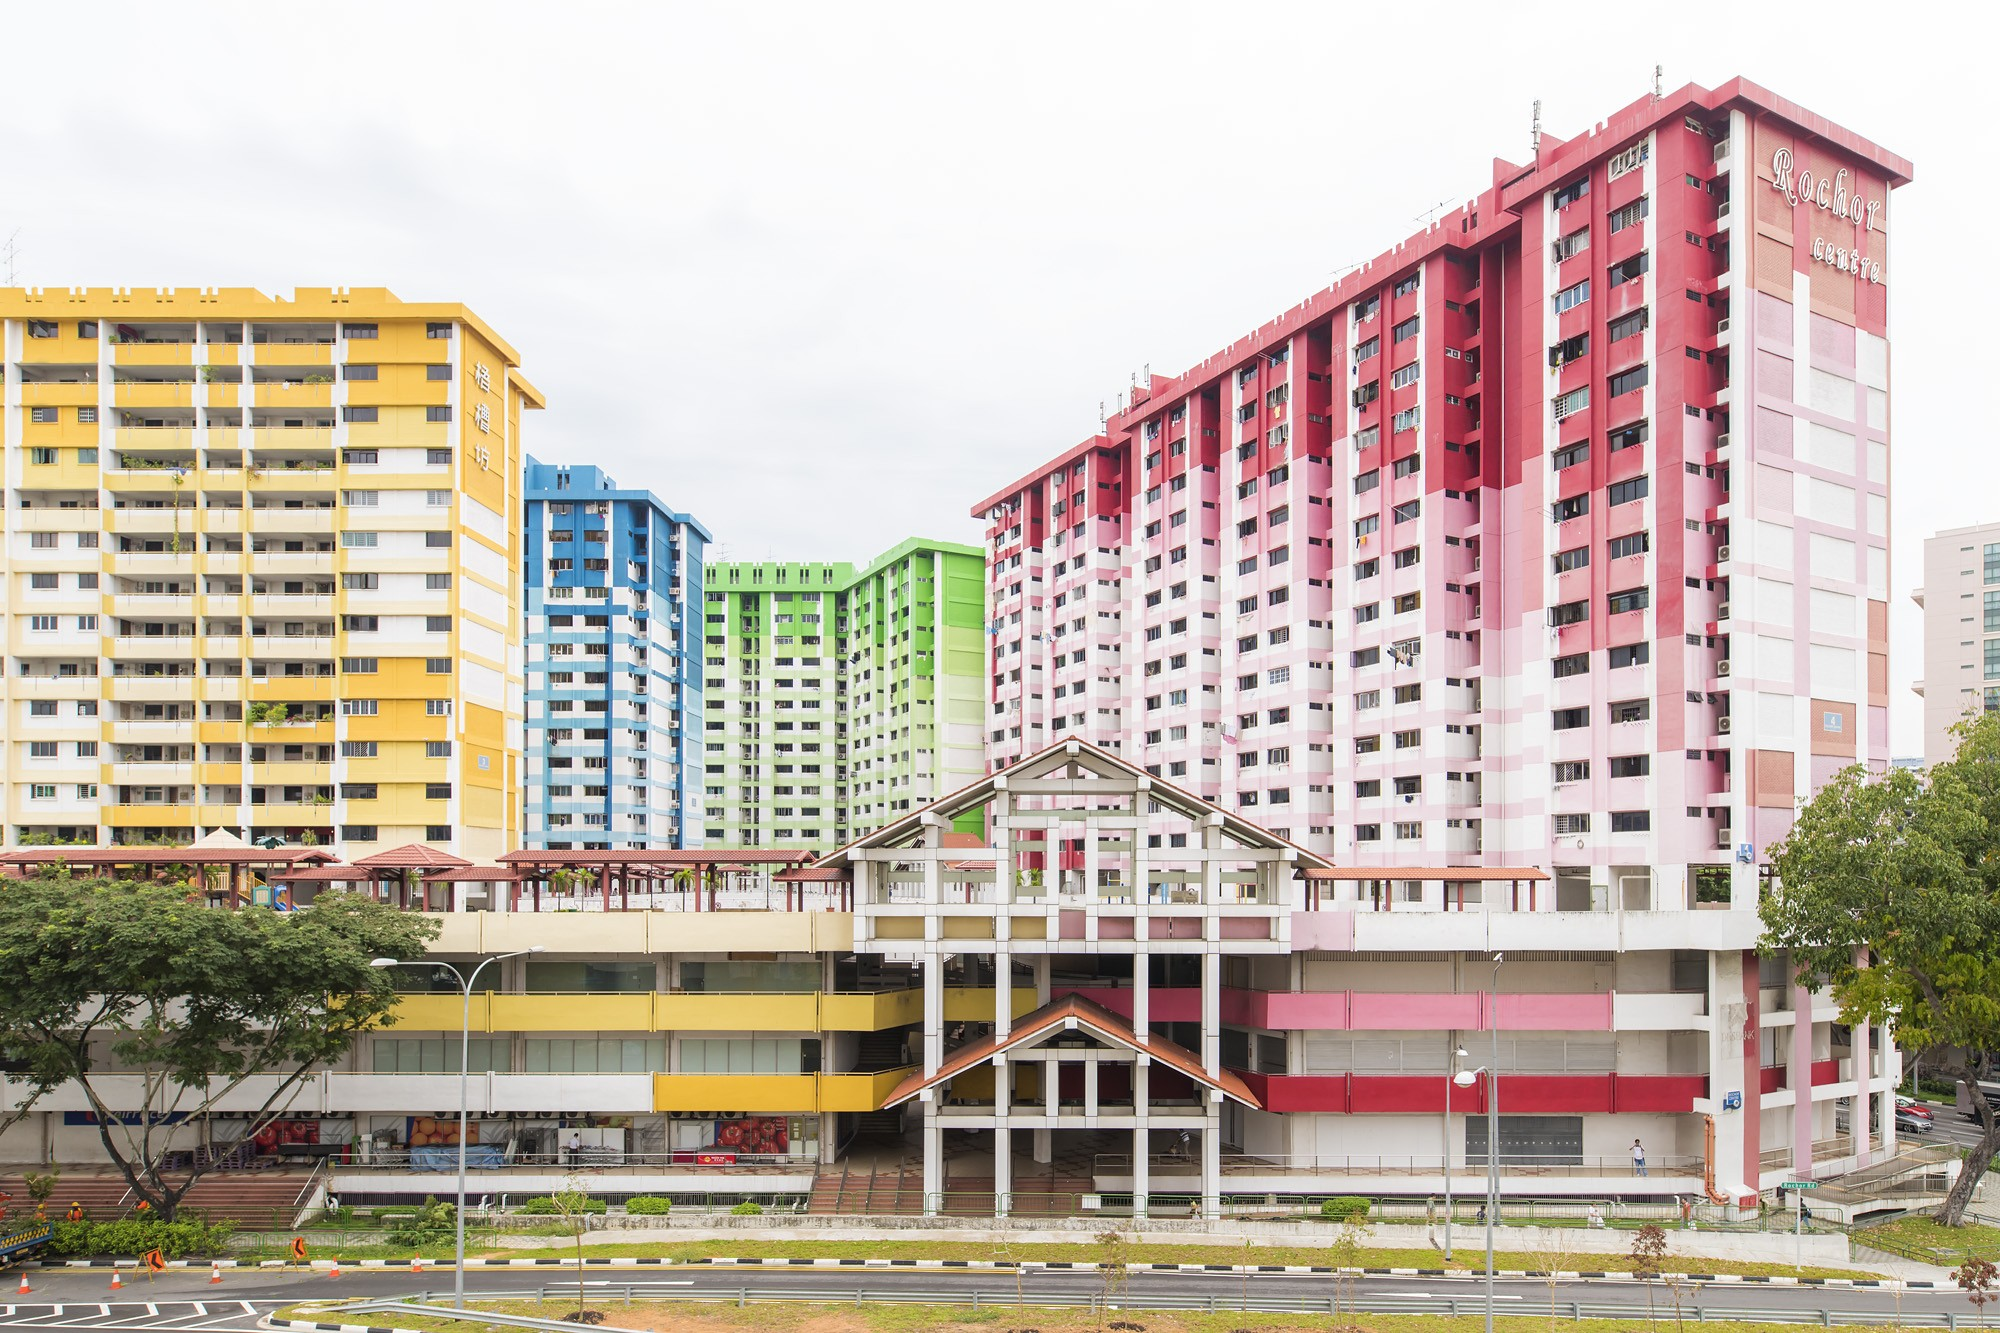 Singapore Colours Rochor Centre - built in 1977 and demolished 2018